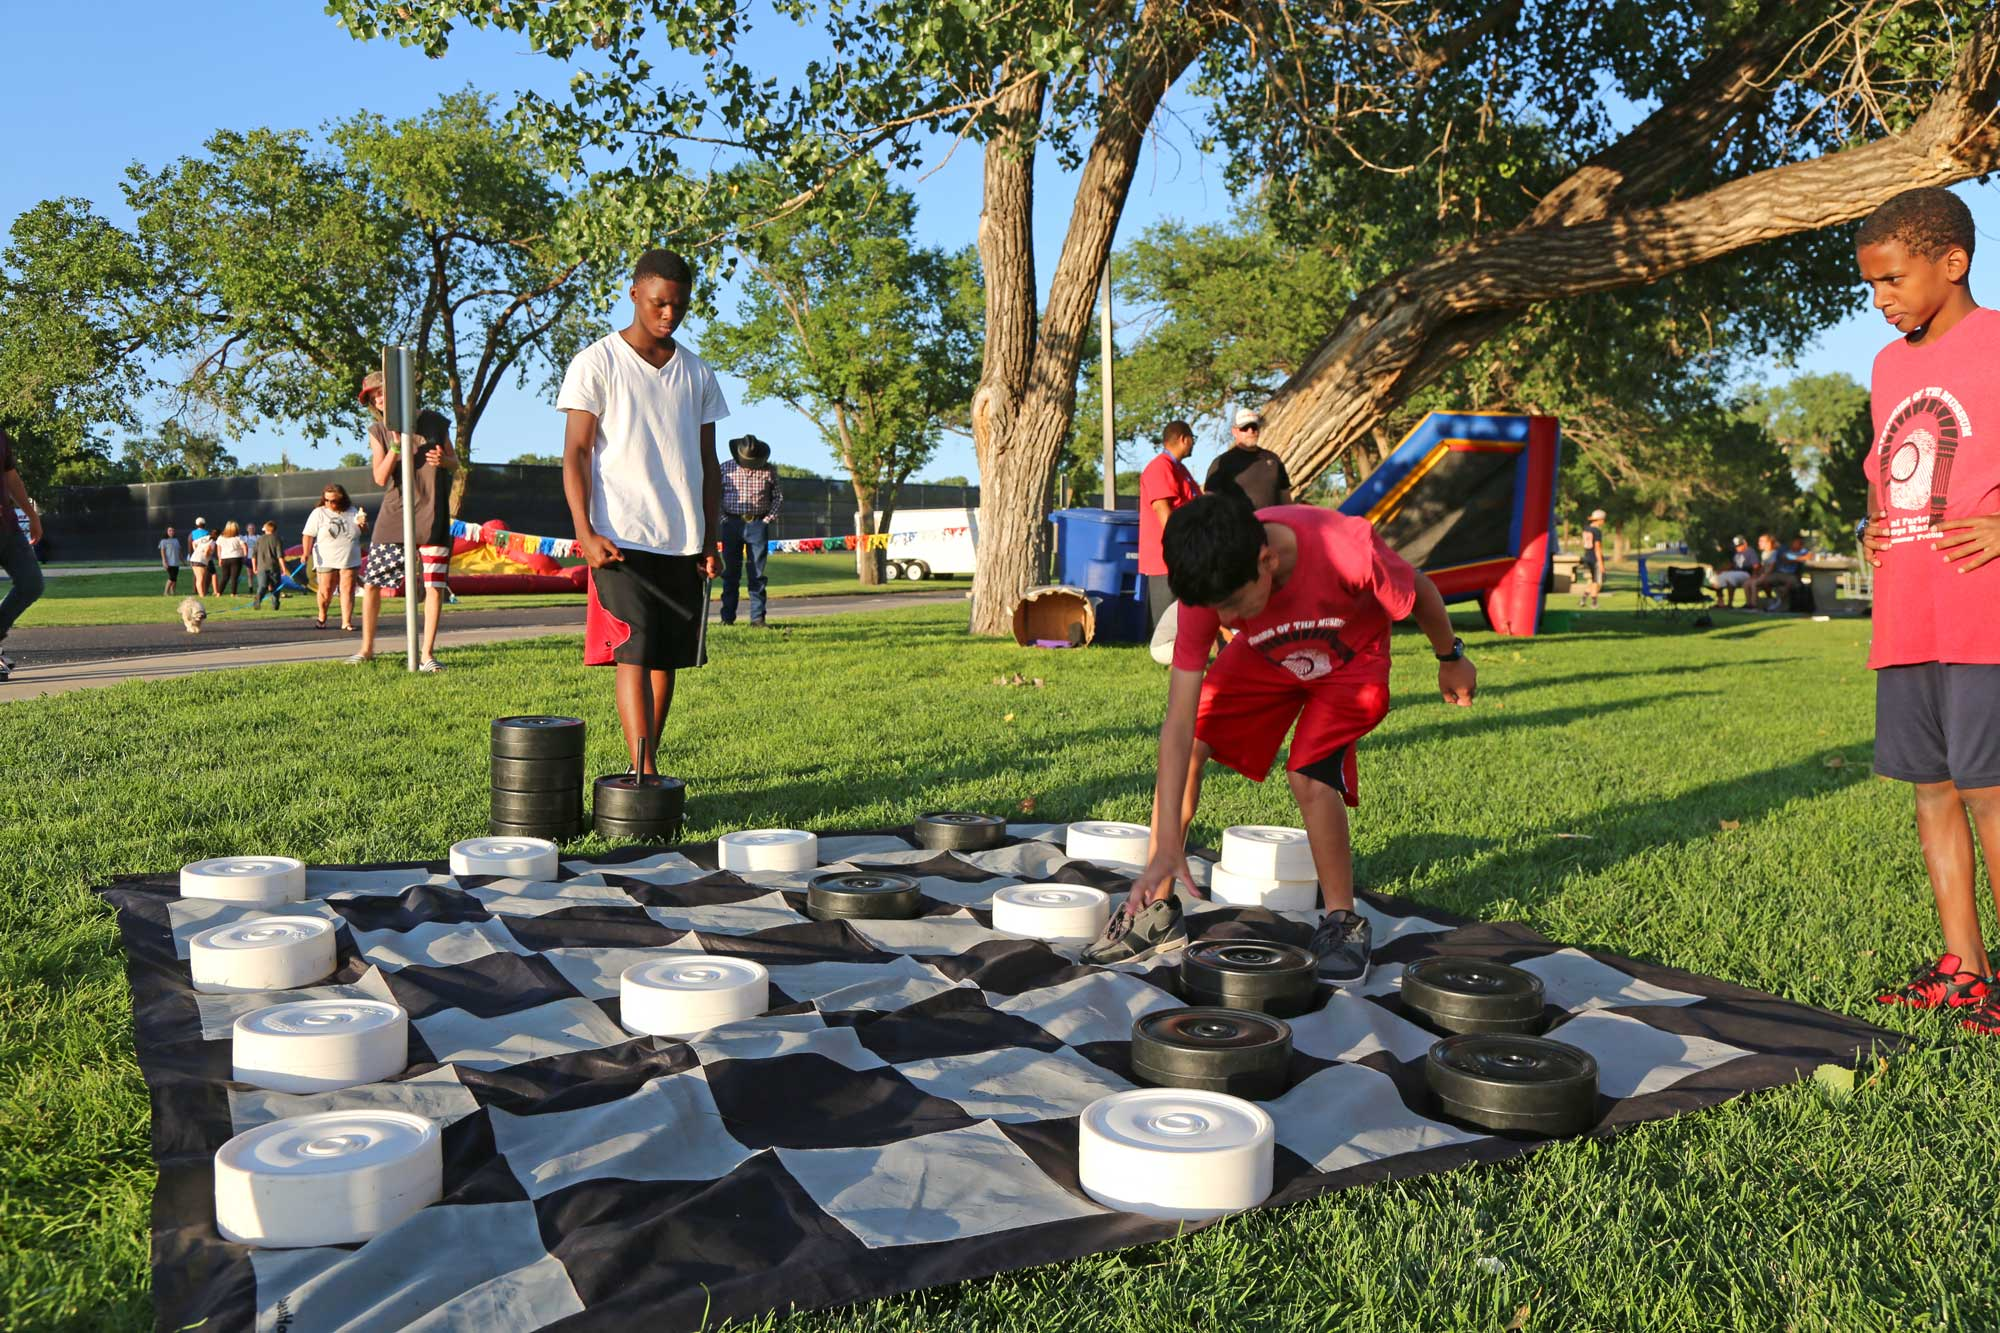 Residents play life size chess